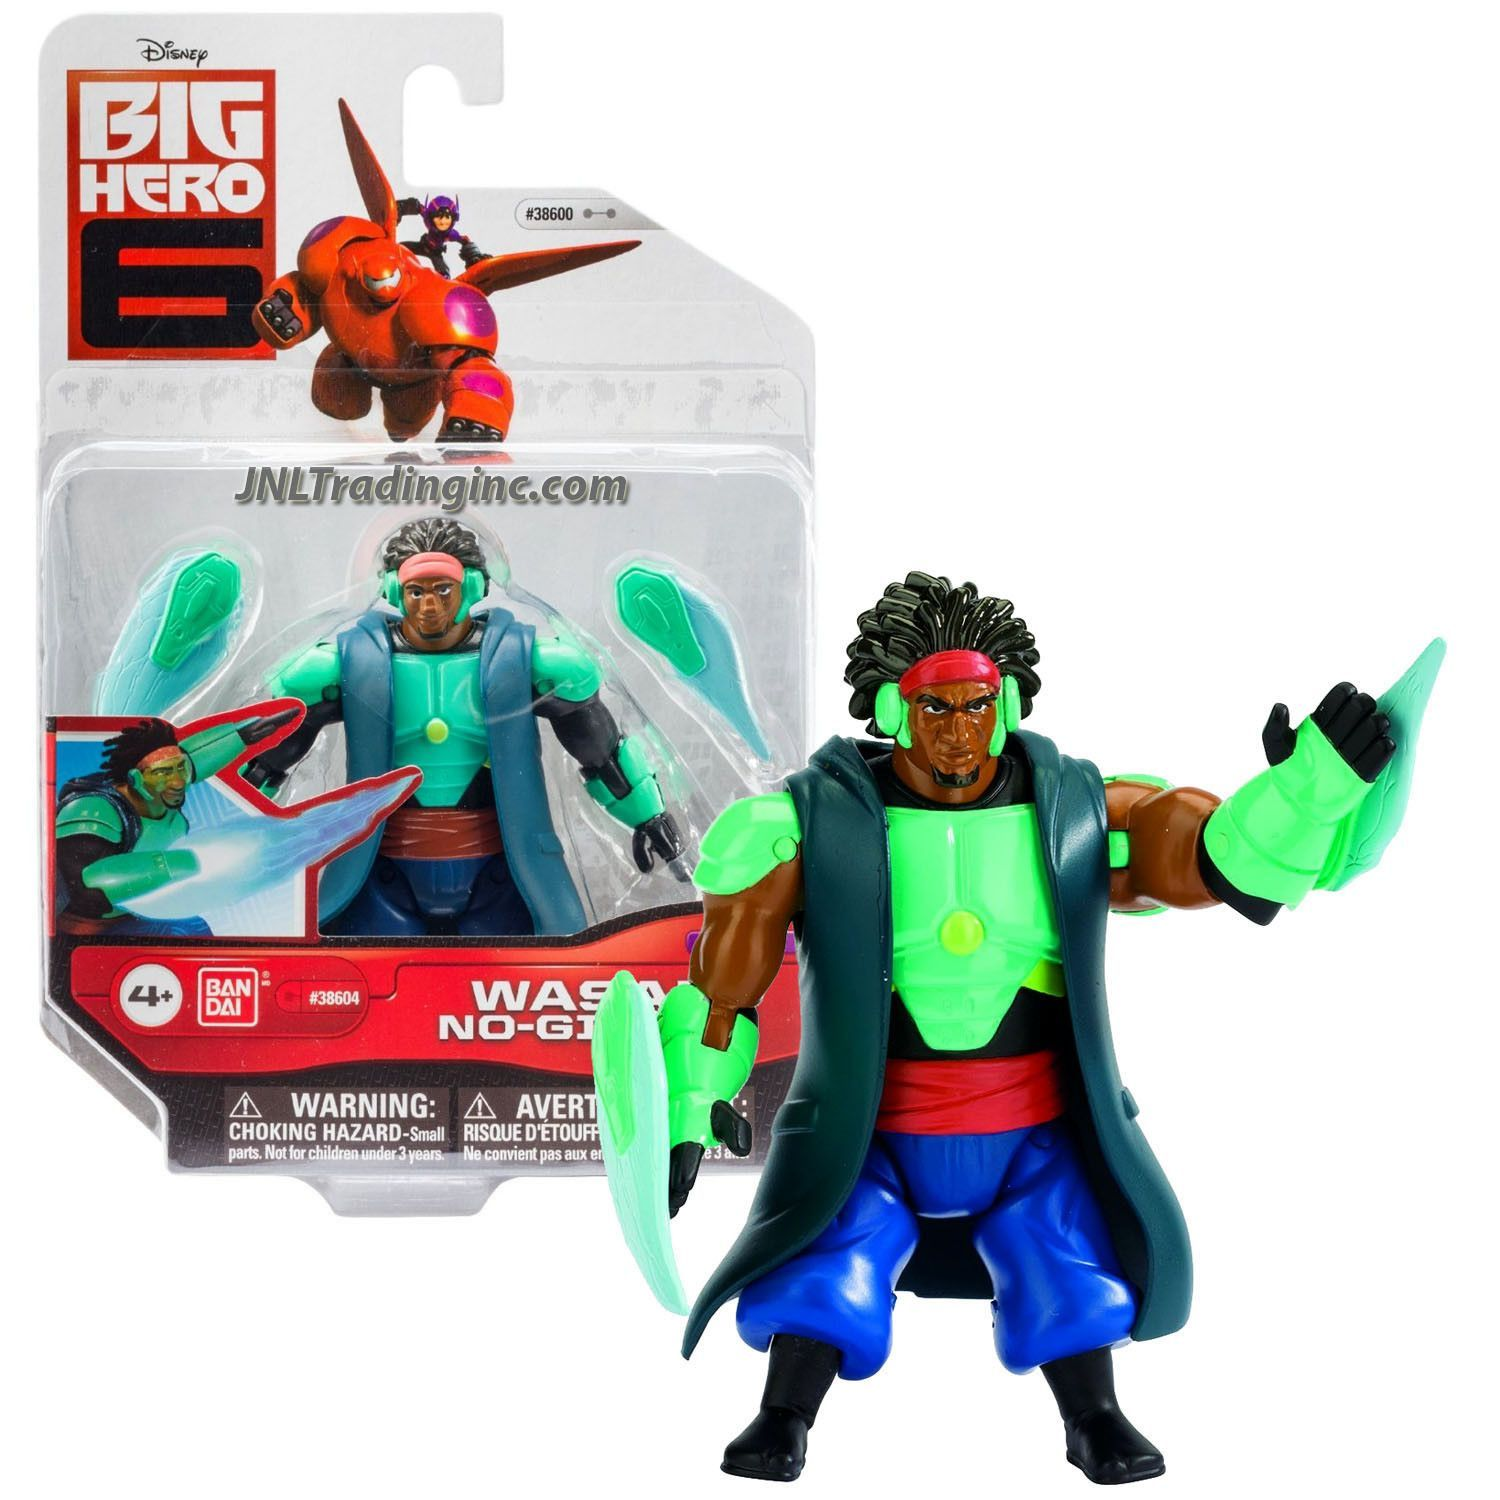 Big hero 6 credits scene they are not only books - Disney Big Hero 6 Movie Series 4 Inch Tall Action Figure Wasabi No